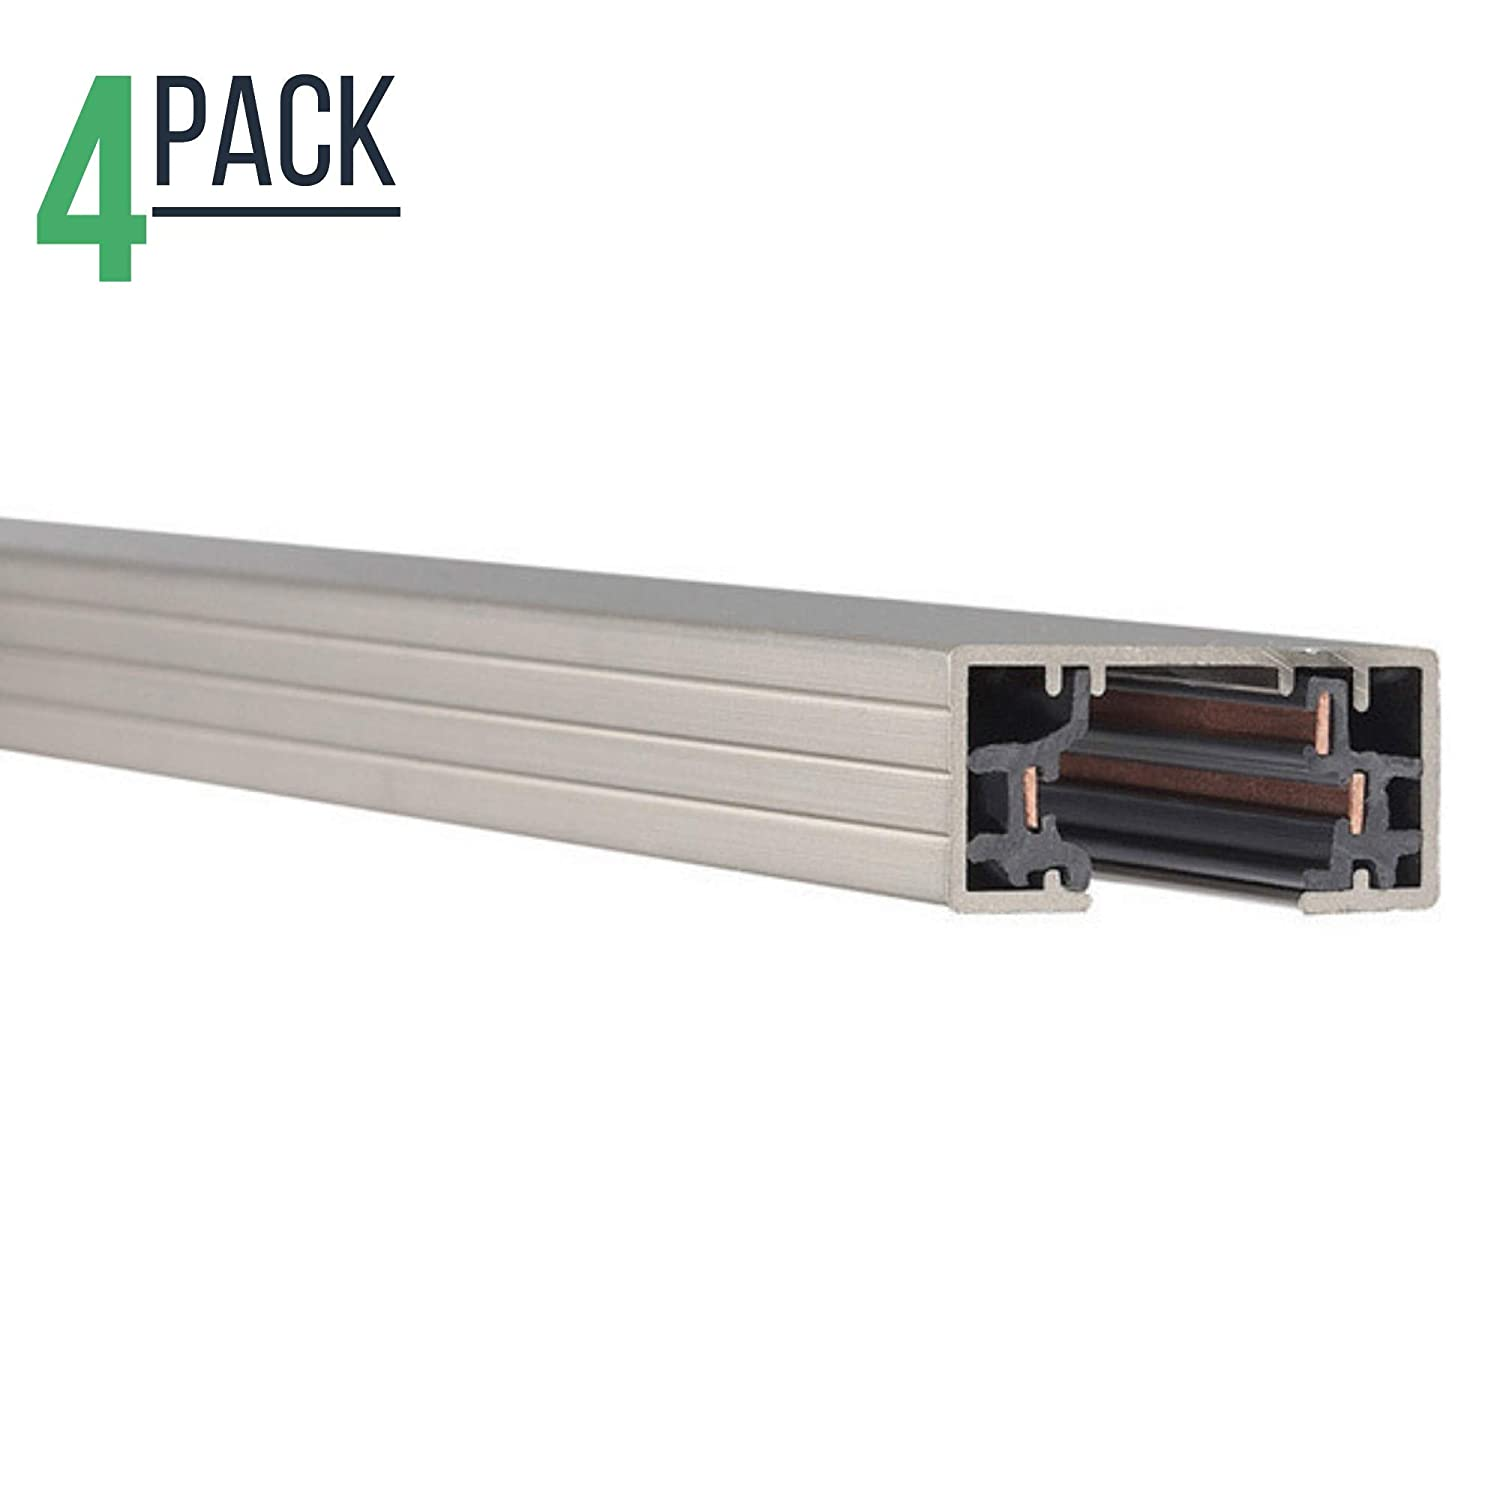 Black Track Lighting Section White Single Circuit 3-Wire Track Rail 4ft H Track Rail Pack of 4